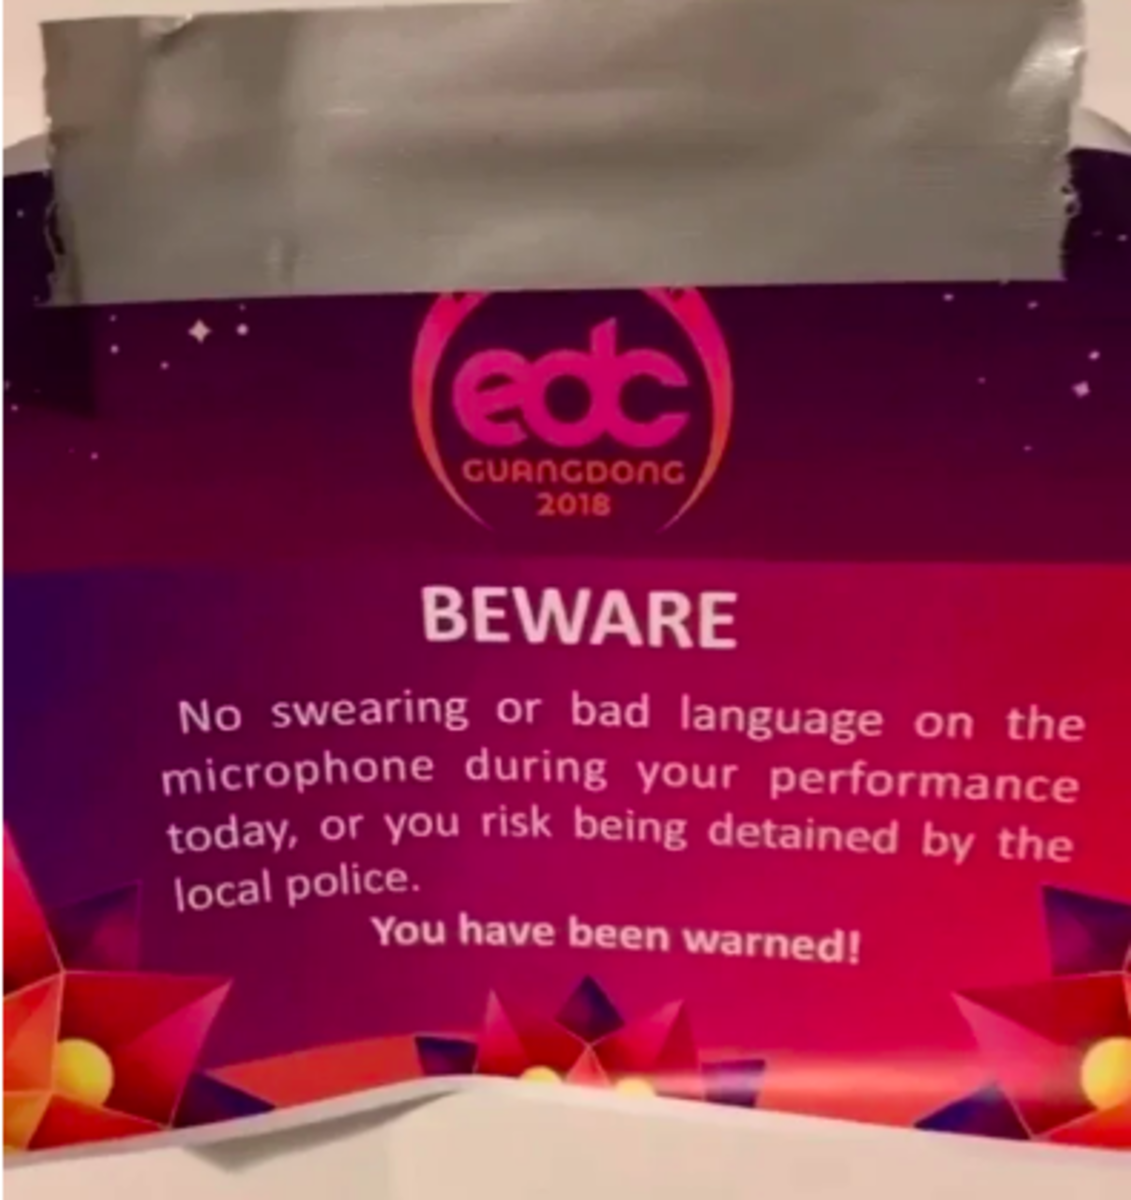 A notice warning  EDC Guangdong headliners not to swear on the mic during their performances.